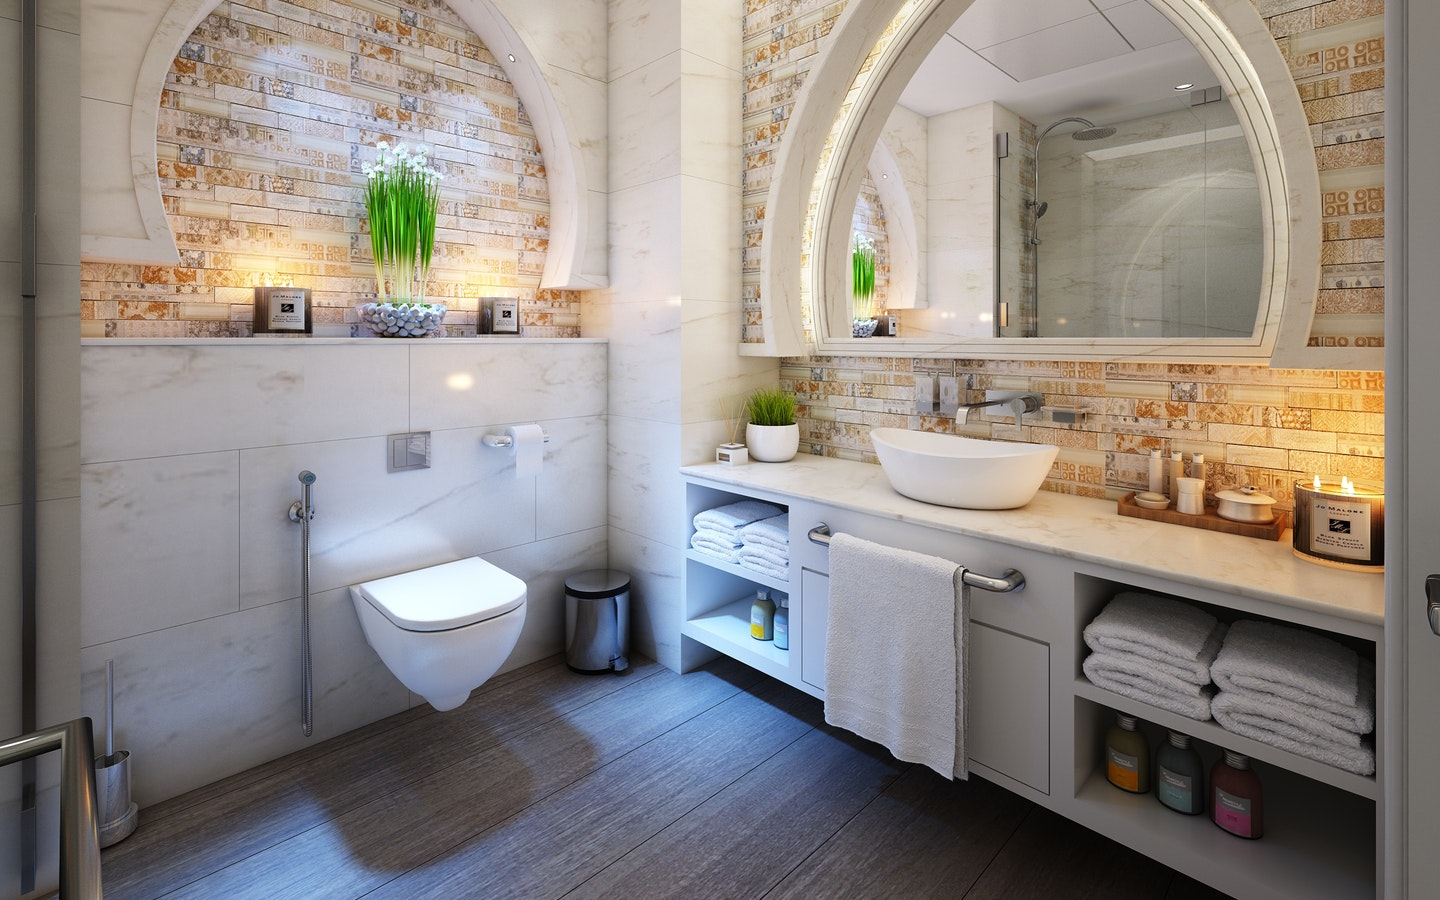 One of the tricks to make small bathrooms feel bigger is to use neutral colors on the wall